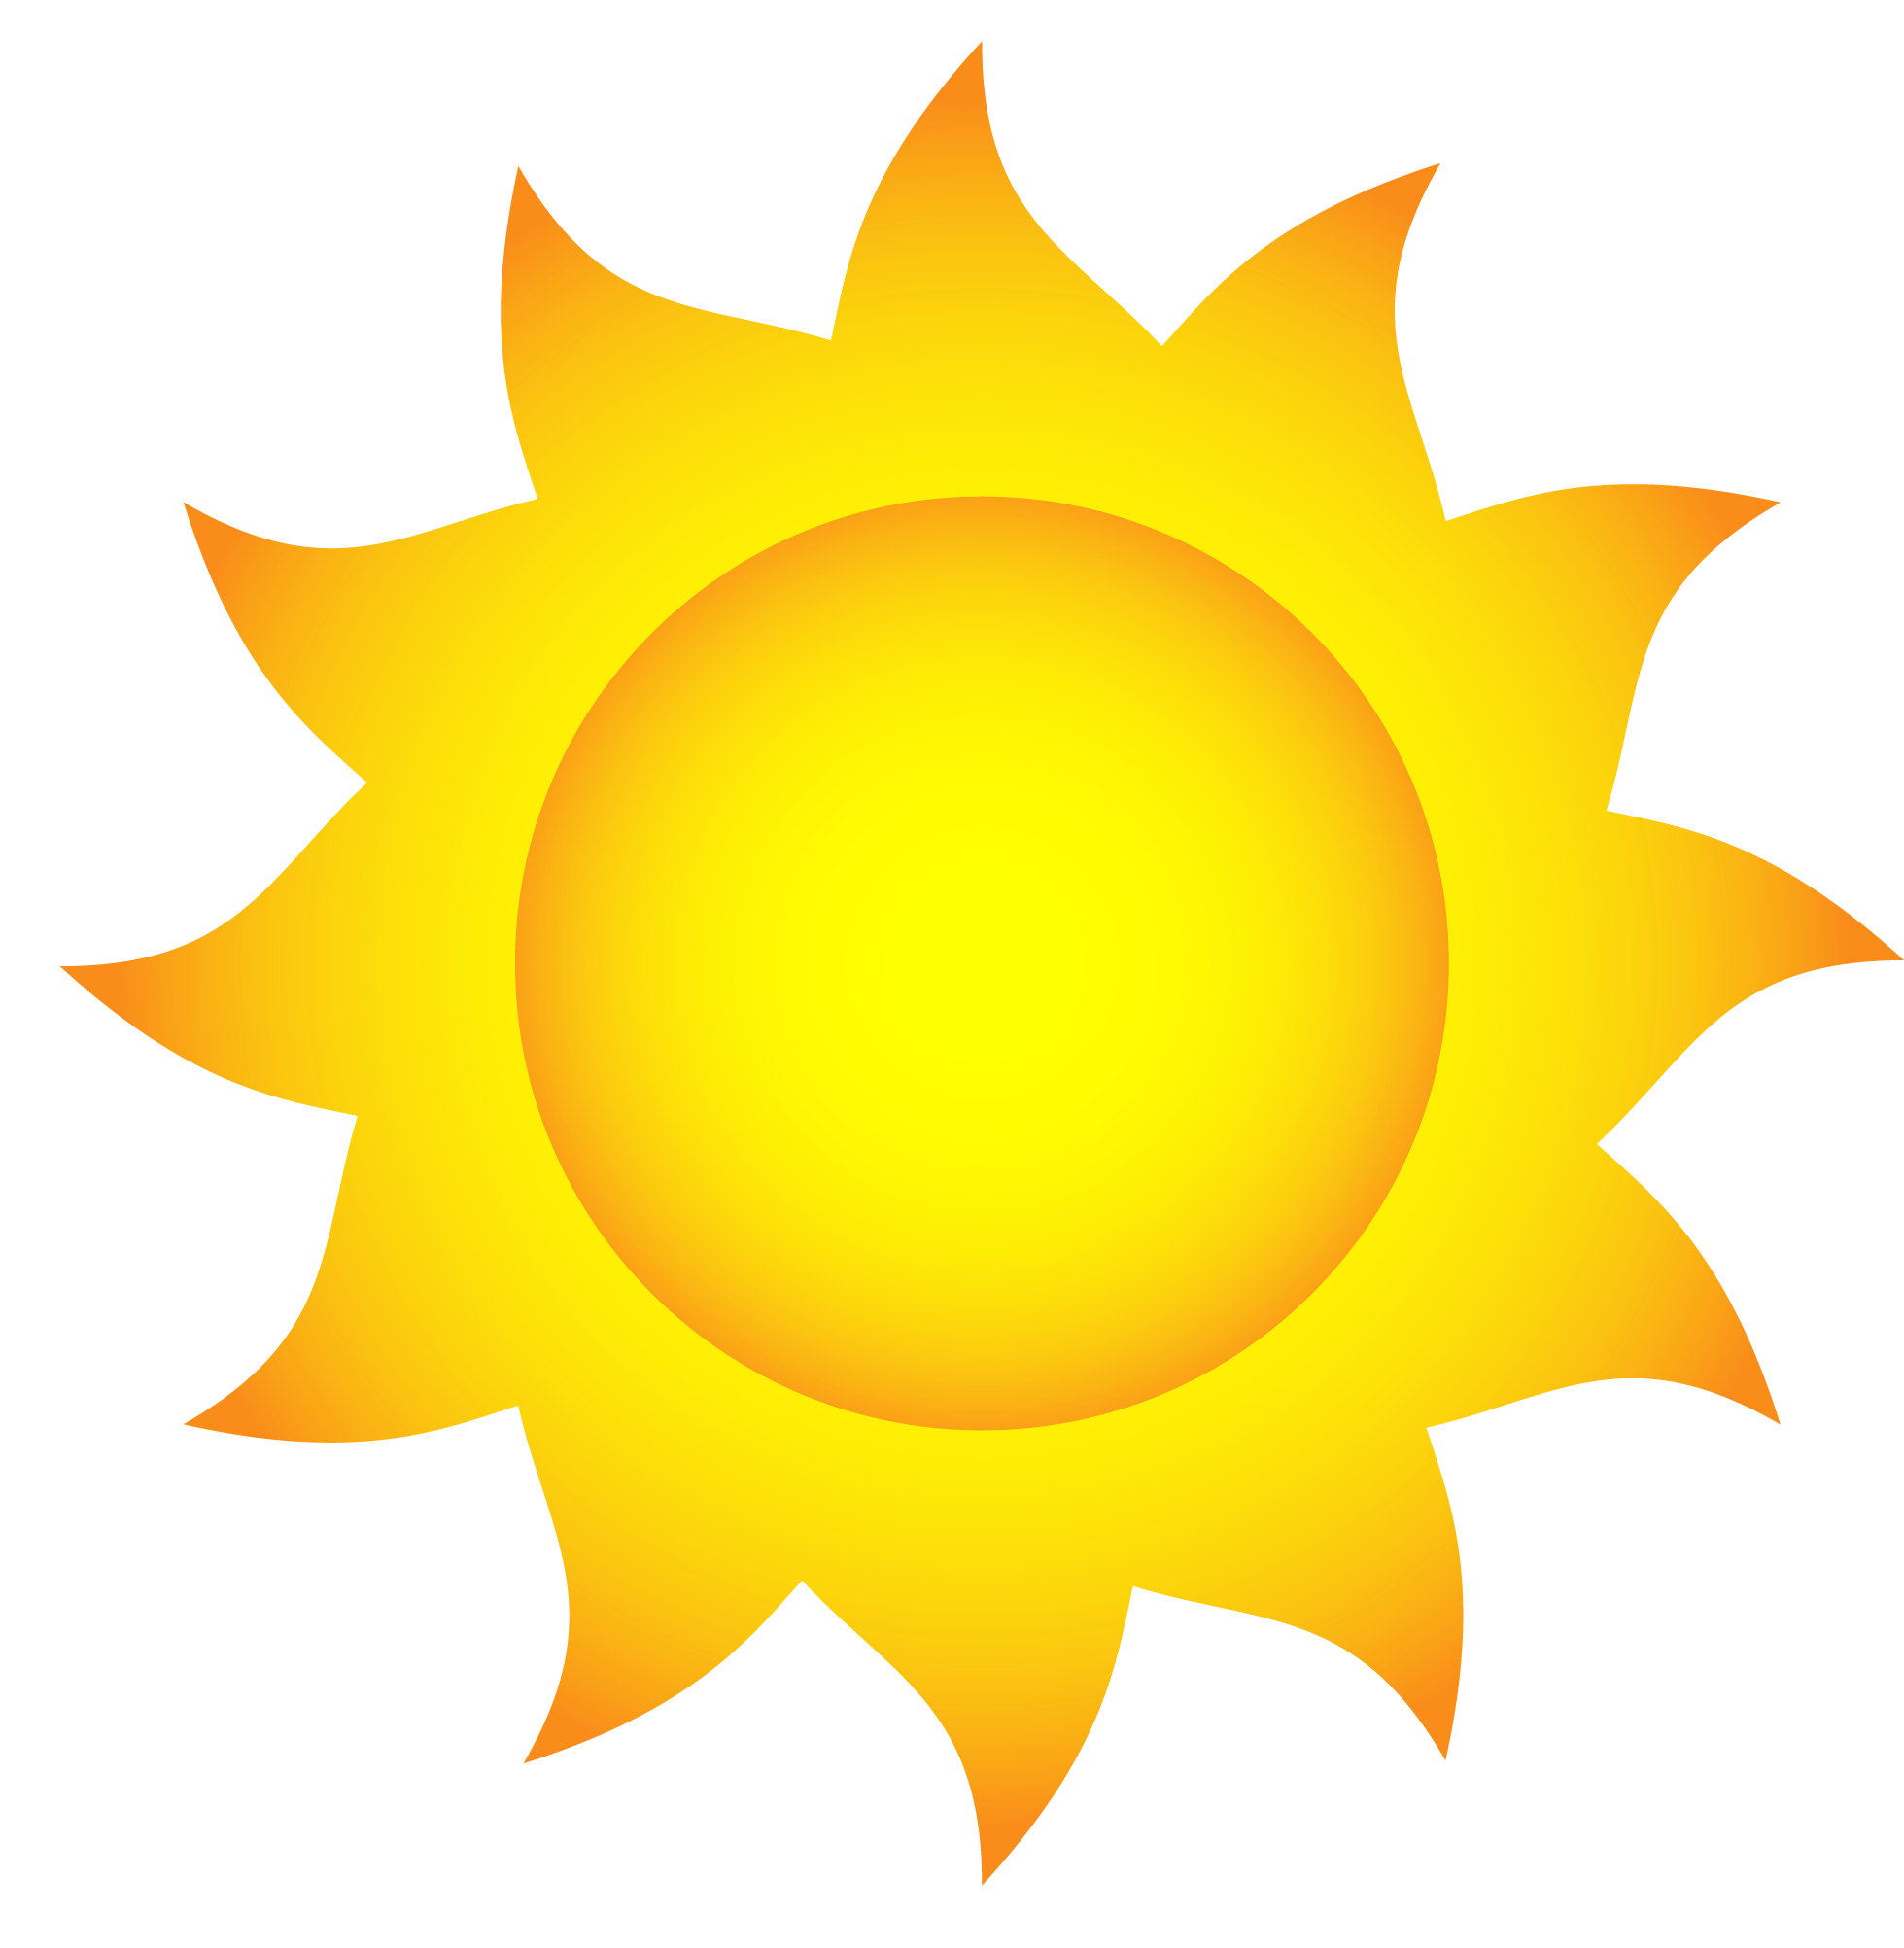 Transparent Sun PNG Clipart Picture | Klipart | Pinterest | Digital ... clipart free library